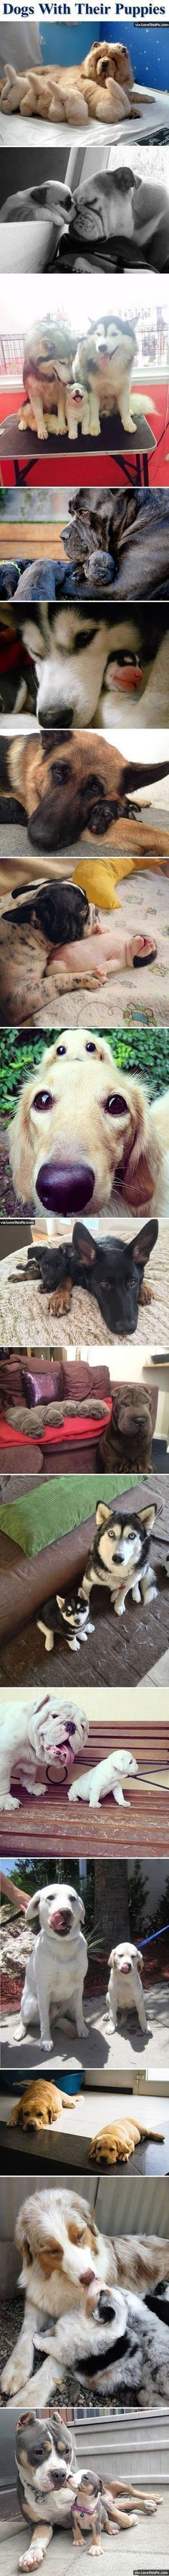 Dogs With Their Puppies - oh my!